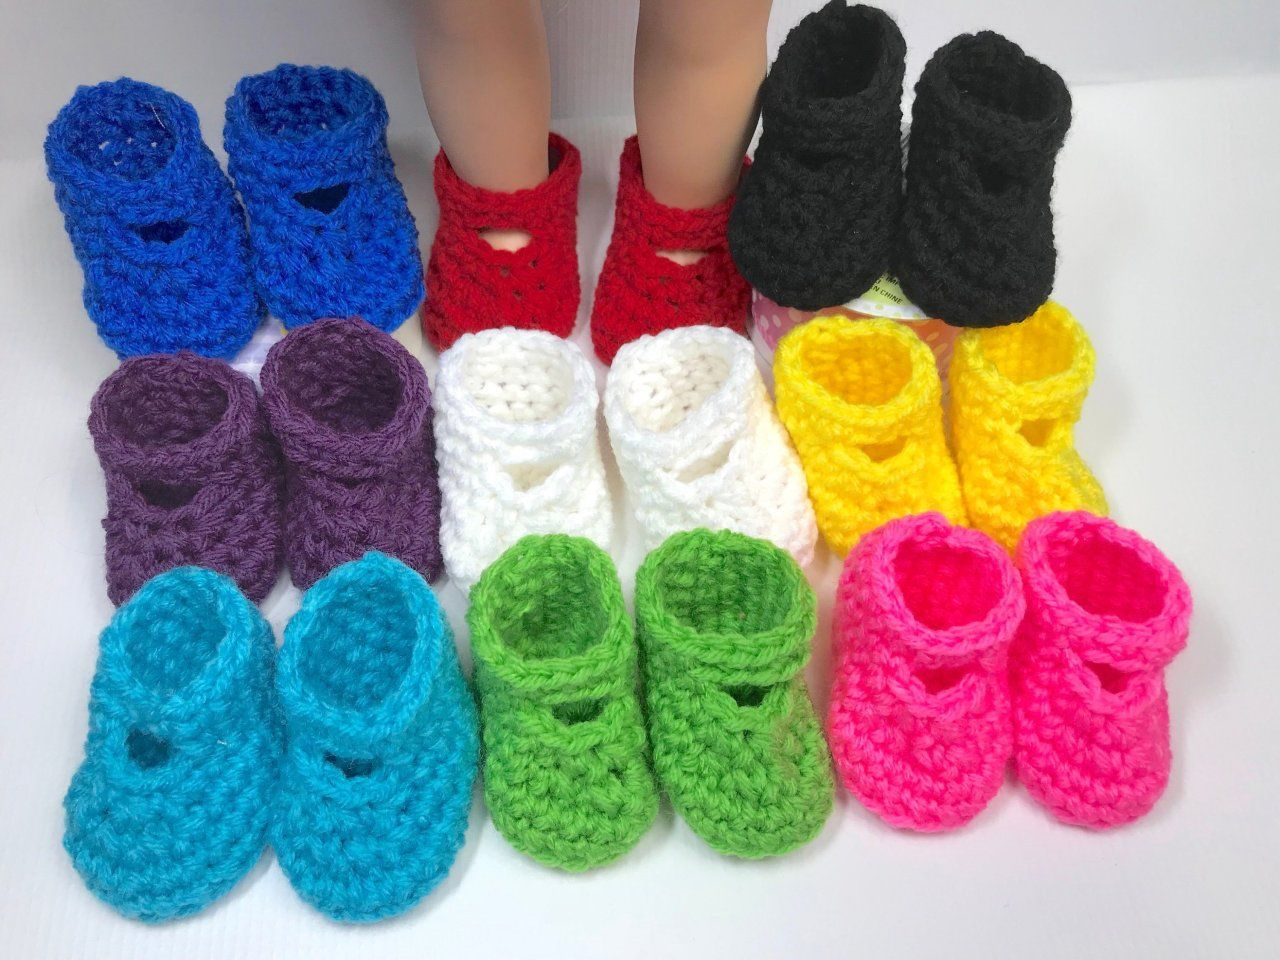 Crochet 18 Free Doll Shoe Pattern - Adoring Doll Clothes Posts